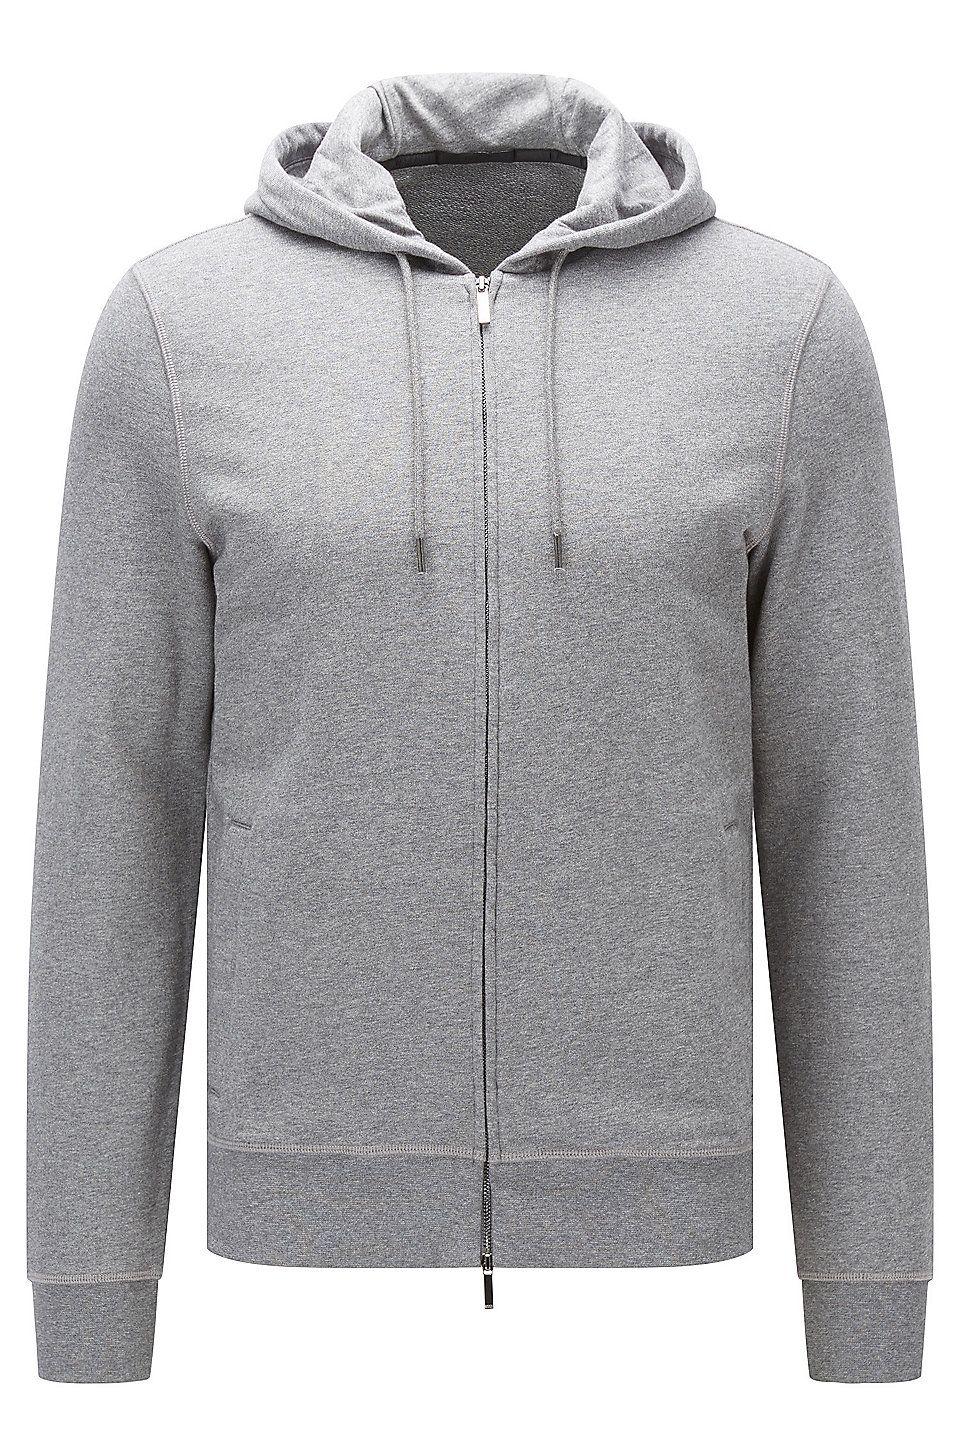 Hugo Boss Slim Fit Zip Through Sweatshirt In Cotton Terry Grey Sweaters And Cardigans From Boss For Men In The Official Hugo Boss Online Store Free Shipping